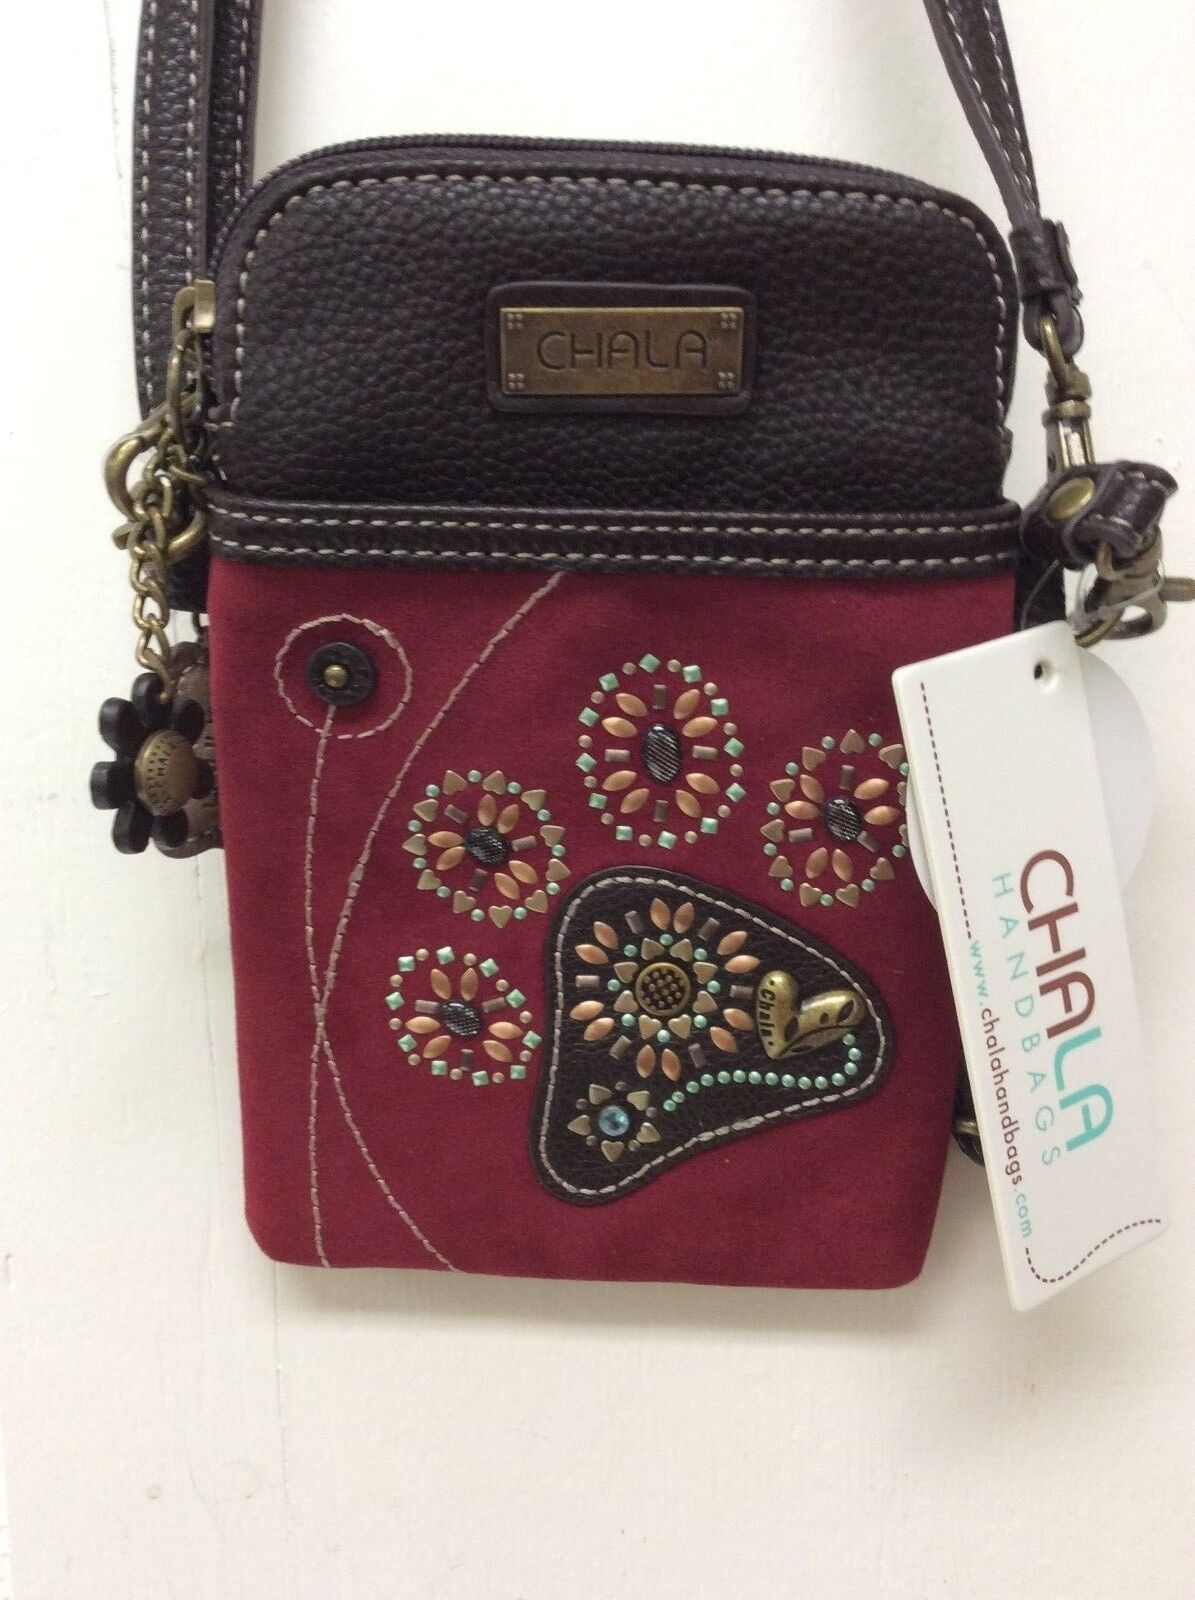 Chala Dazzled Dog Paw Print Cell Phone Crossbody Convertible